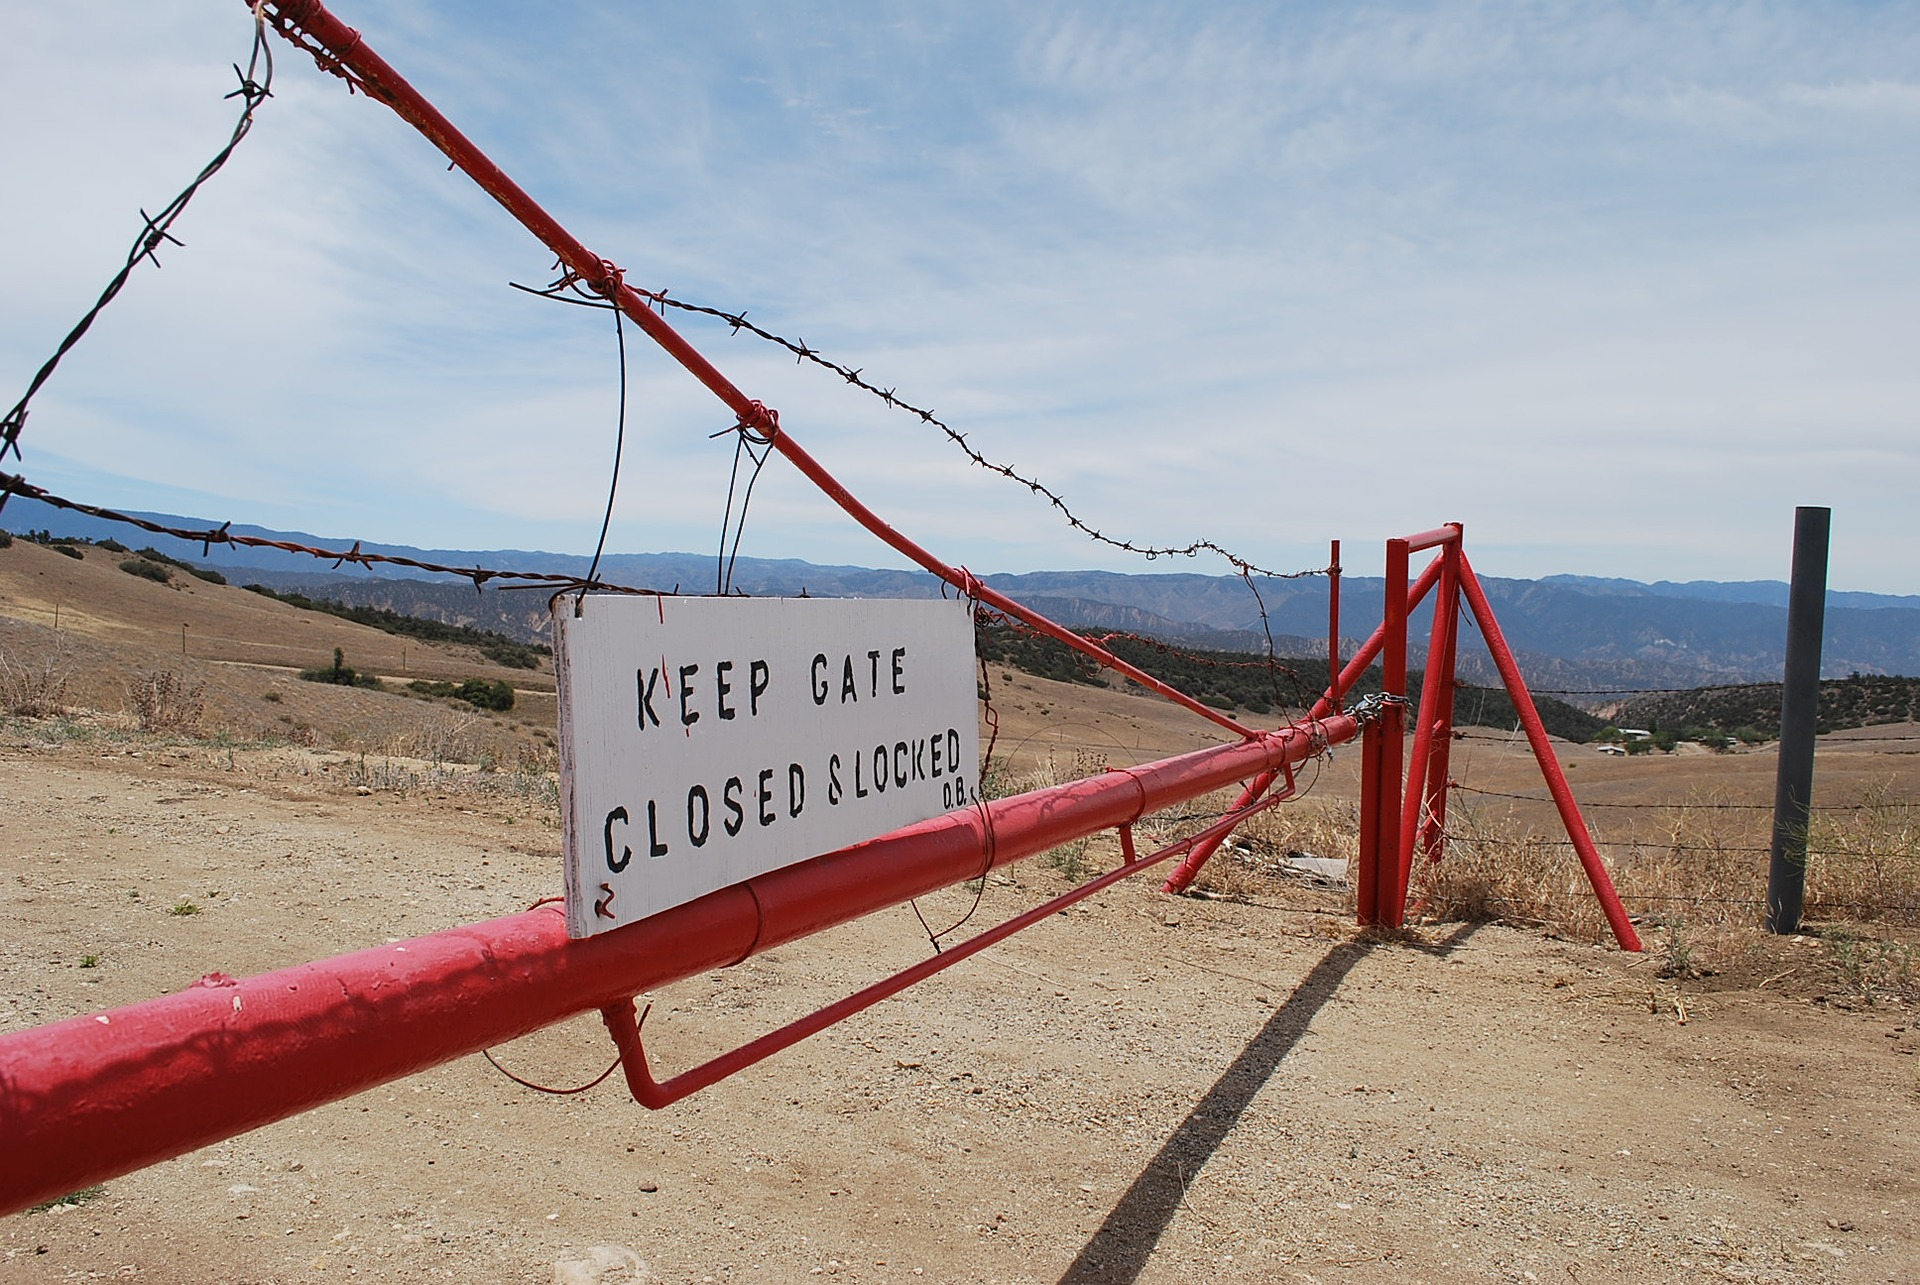 Unwelcome looking gate in arid landscape with barbed wire saying keep gate closed and locked